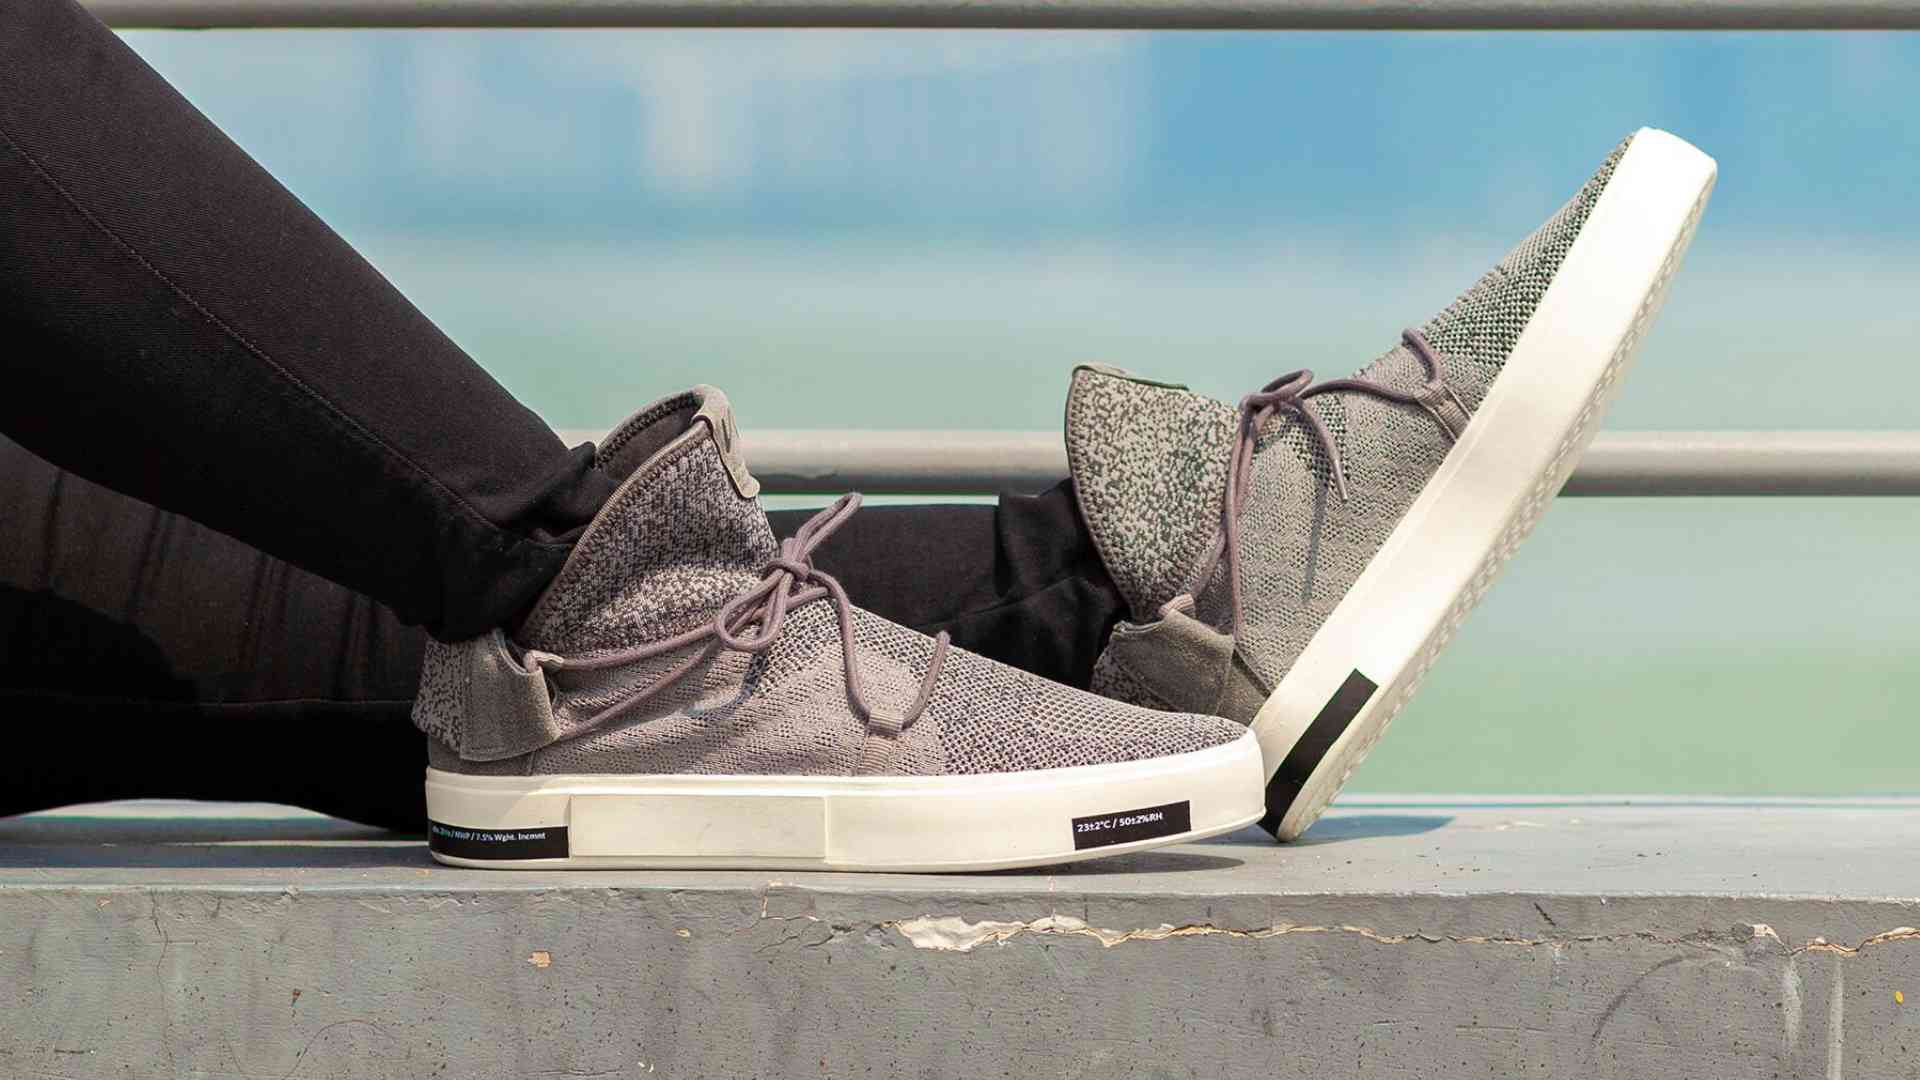 VIA, weatherproof knit shoes made from recycled ocean plastic